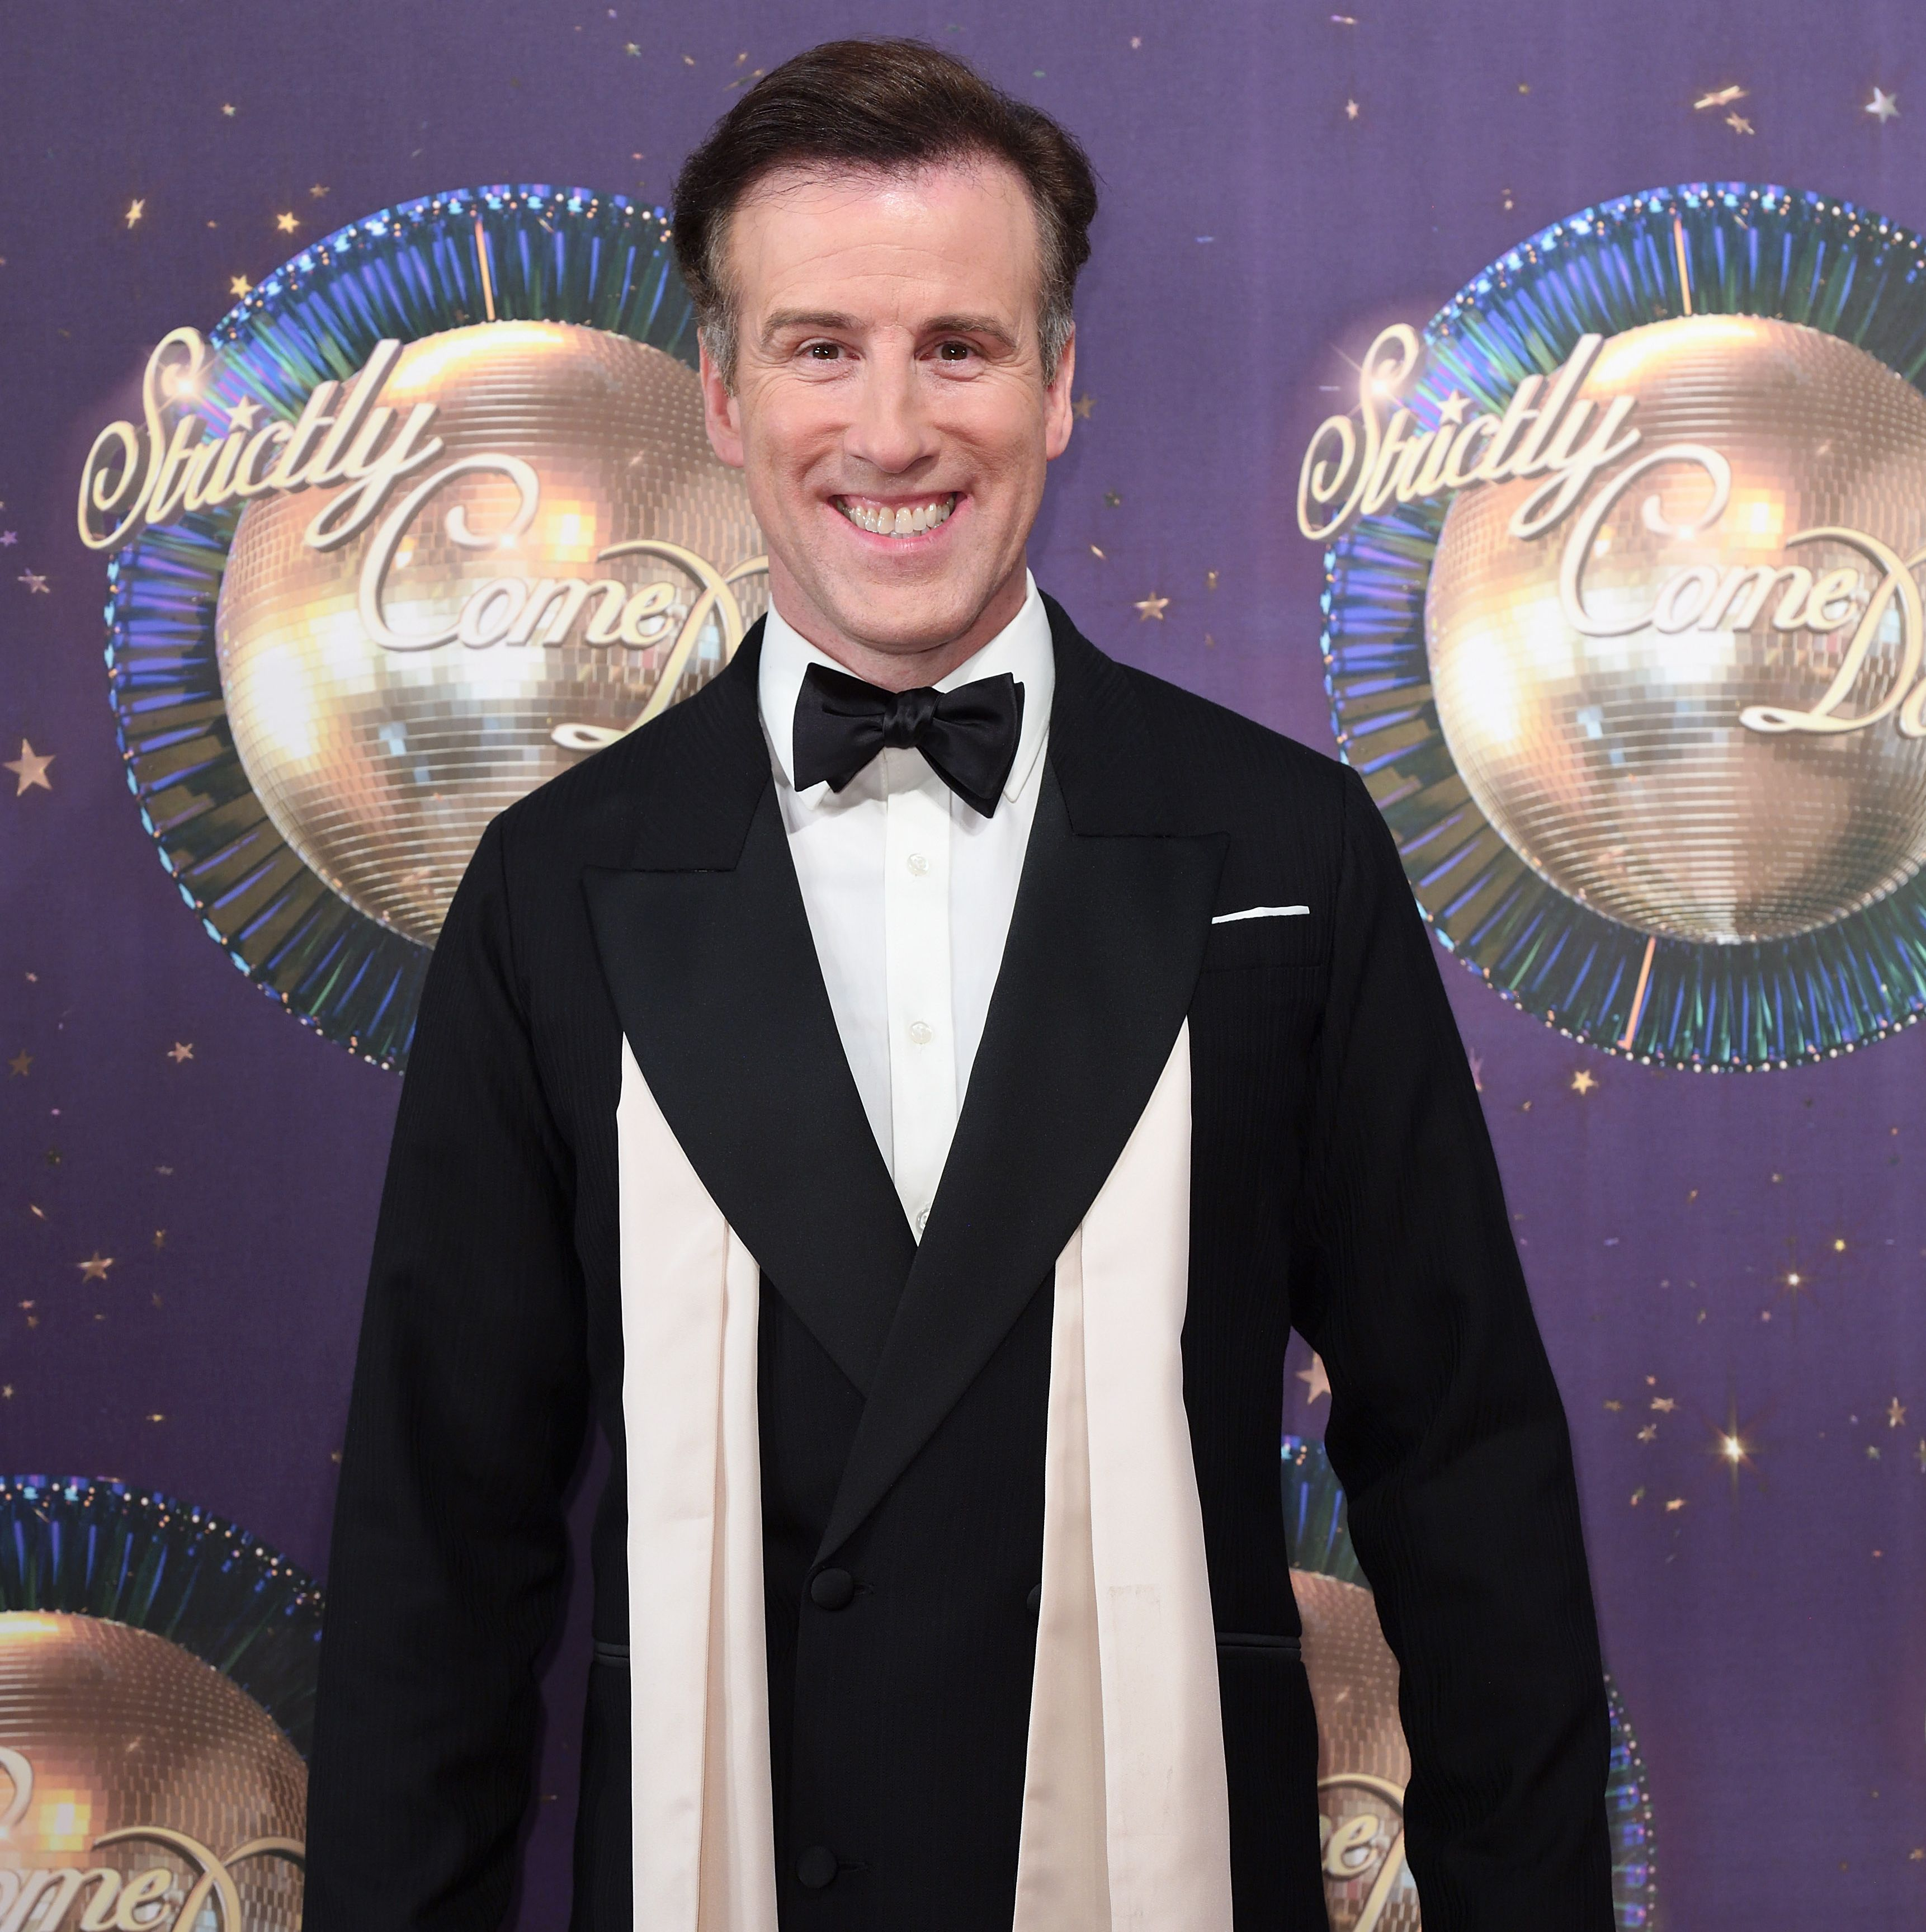 Anton du Beke wants Darcey Bussell to return to Strictly Come Dancing – but in a different role